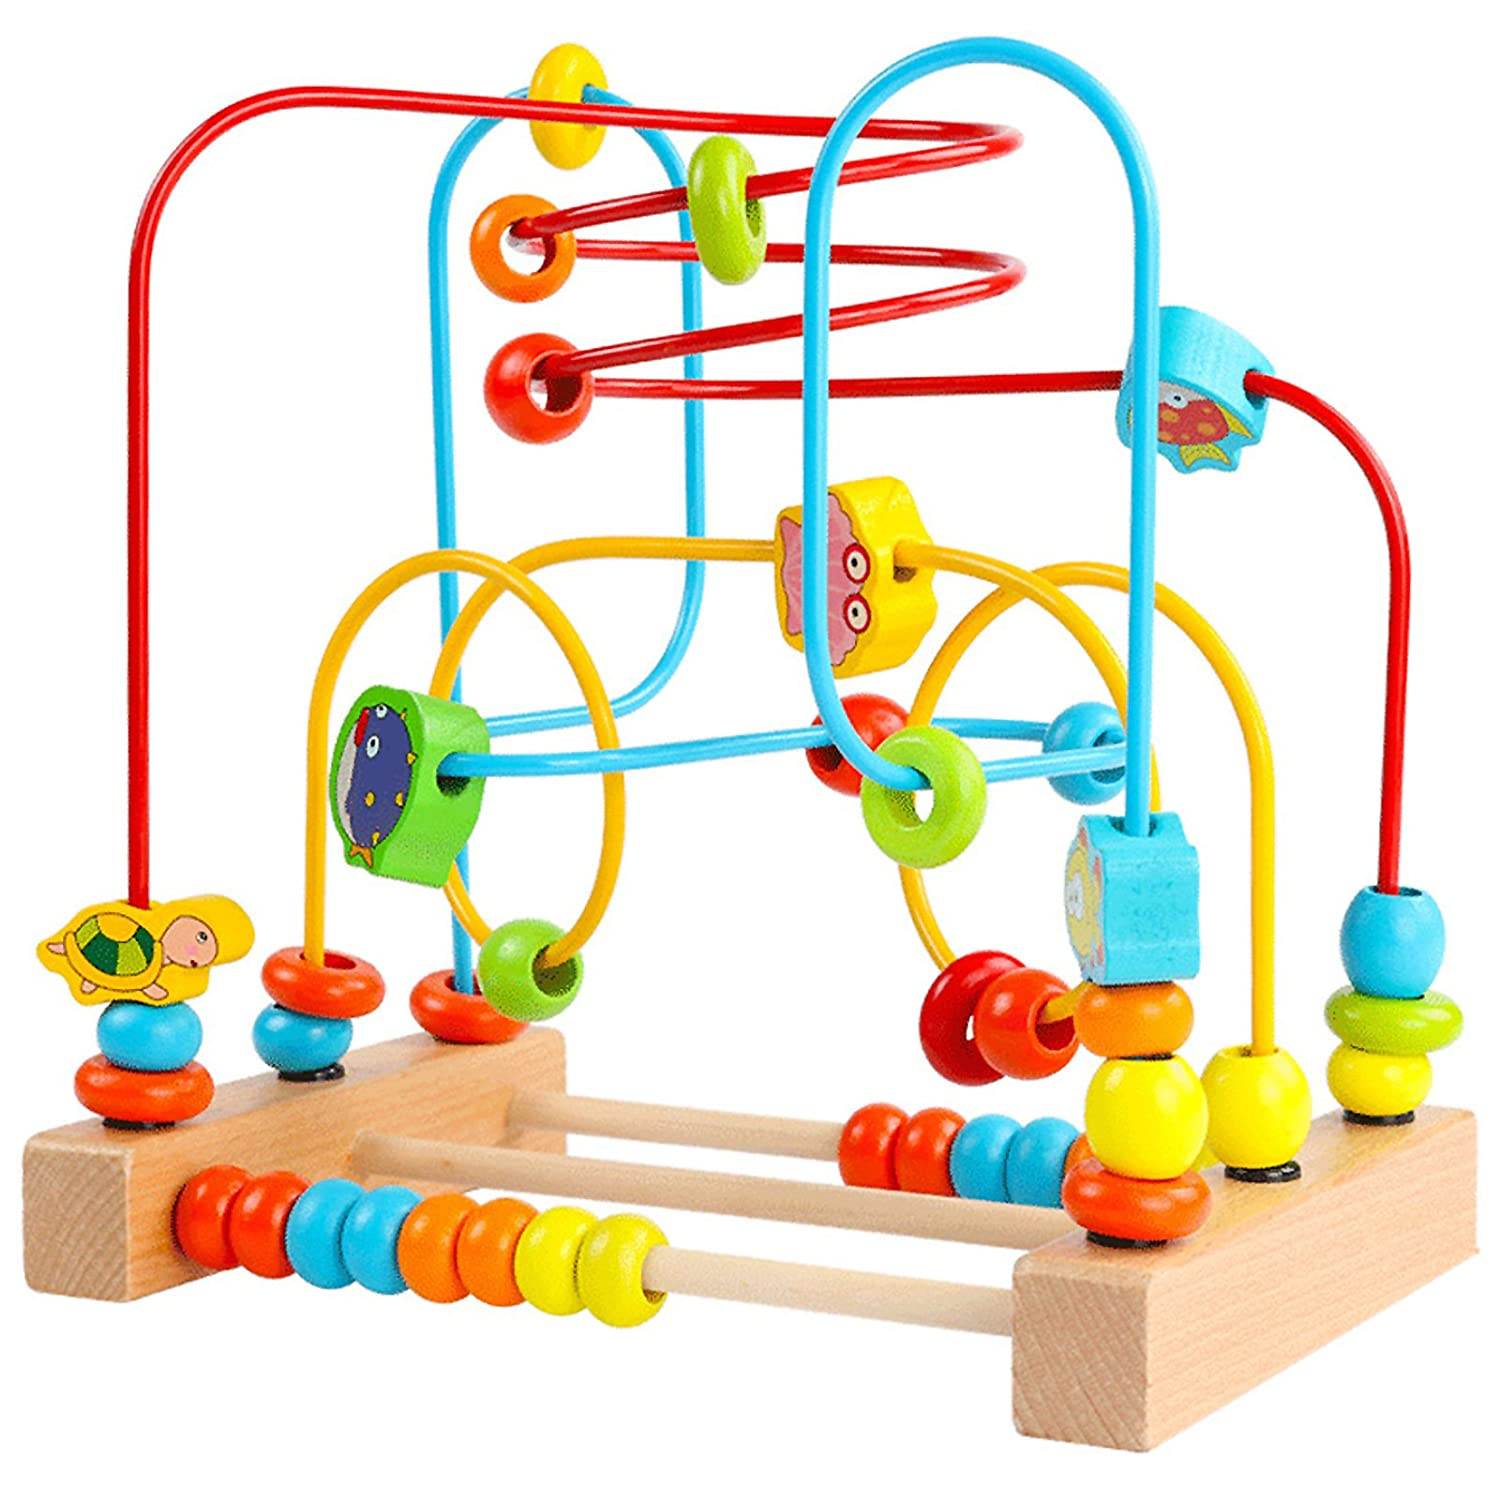 5a4f9ac30026b Amazon.com  Timy First Bead Maze Roller Coaster Wooden Educational Circle  Toy for Toddlers  Toys   Games